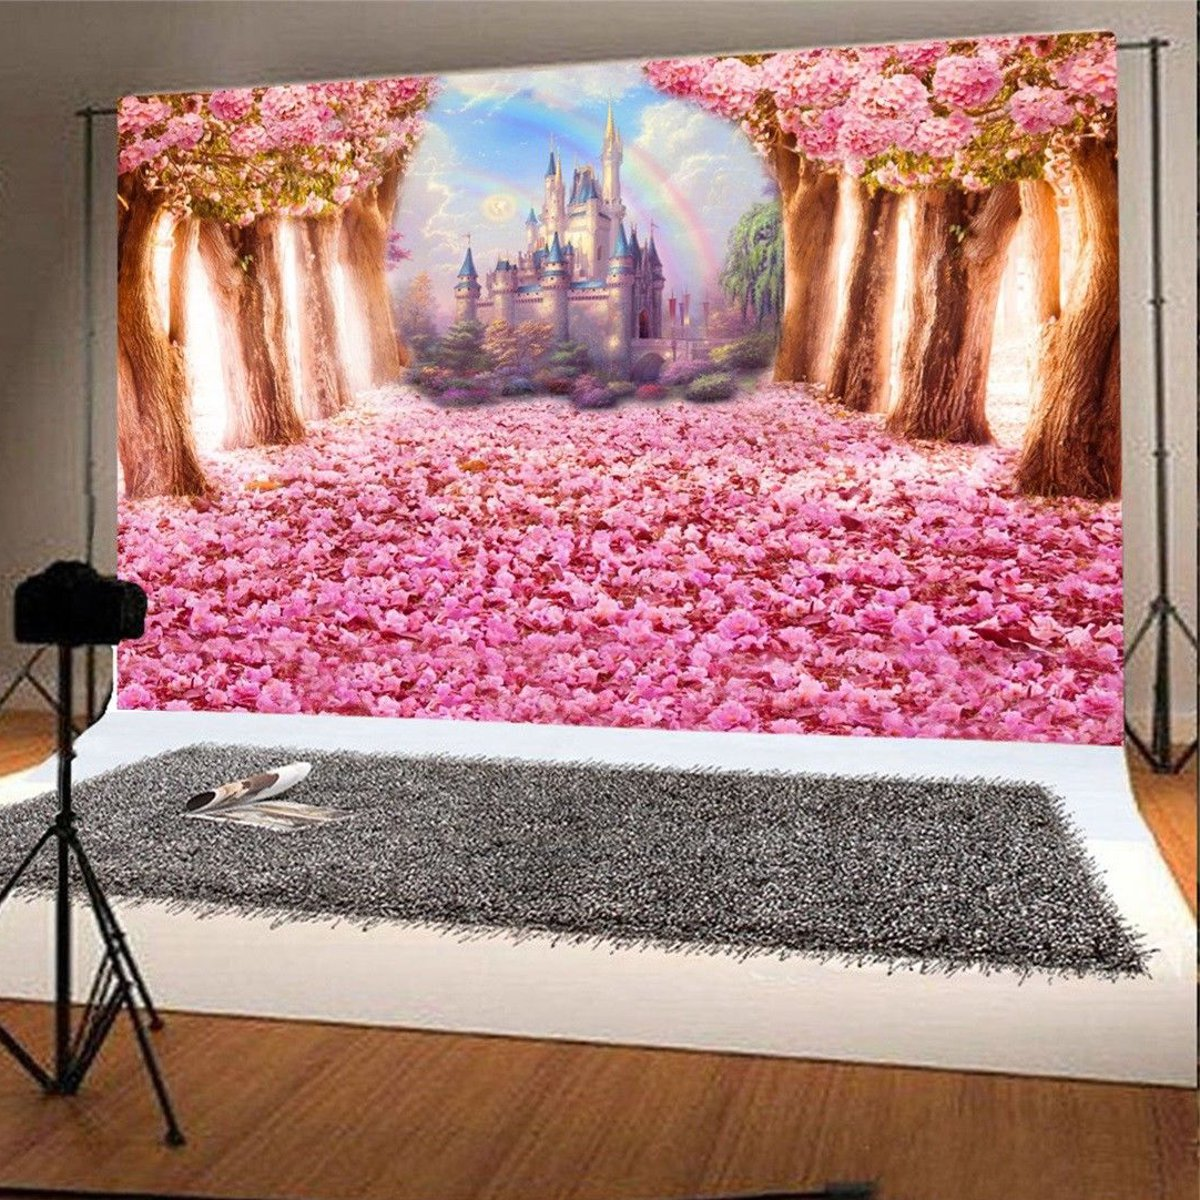 5x7FT 3x5FT Pink Flower Road Tree Castle Photography Backdrop Background Studio Prop